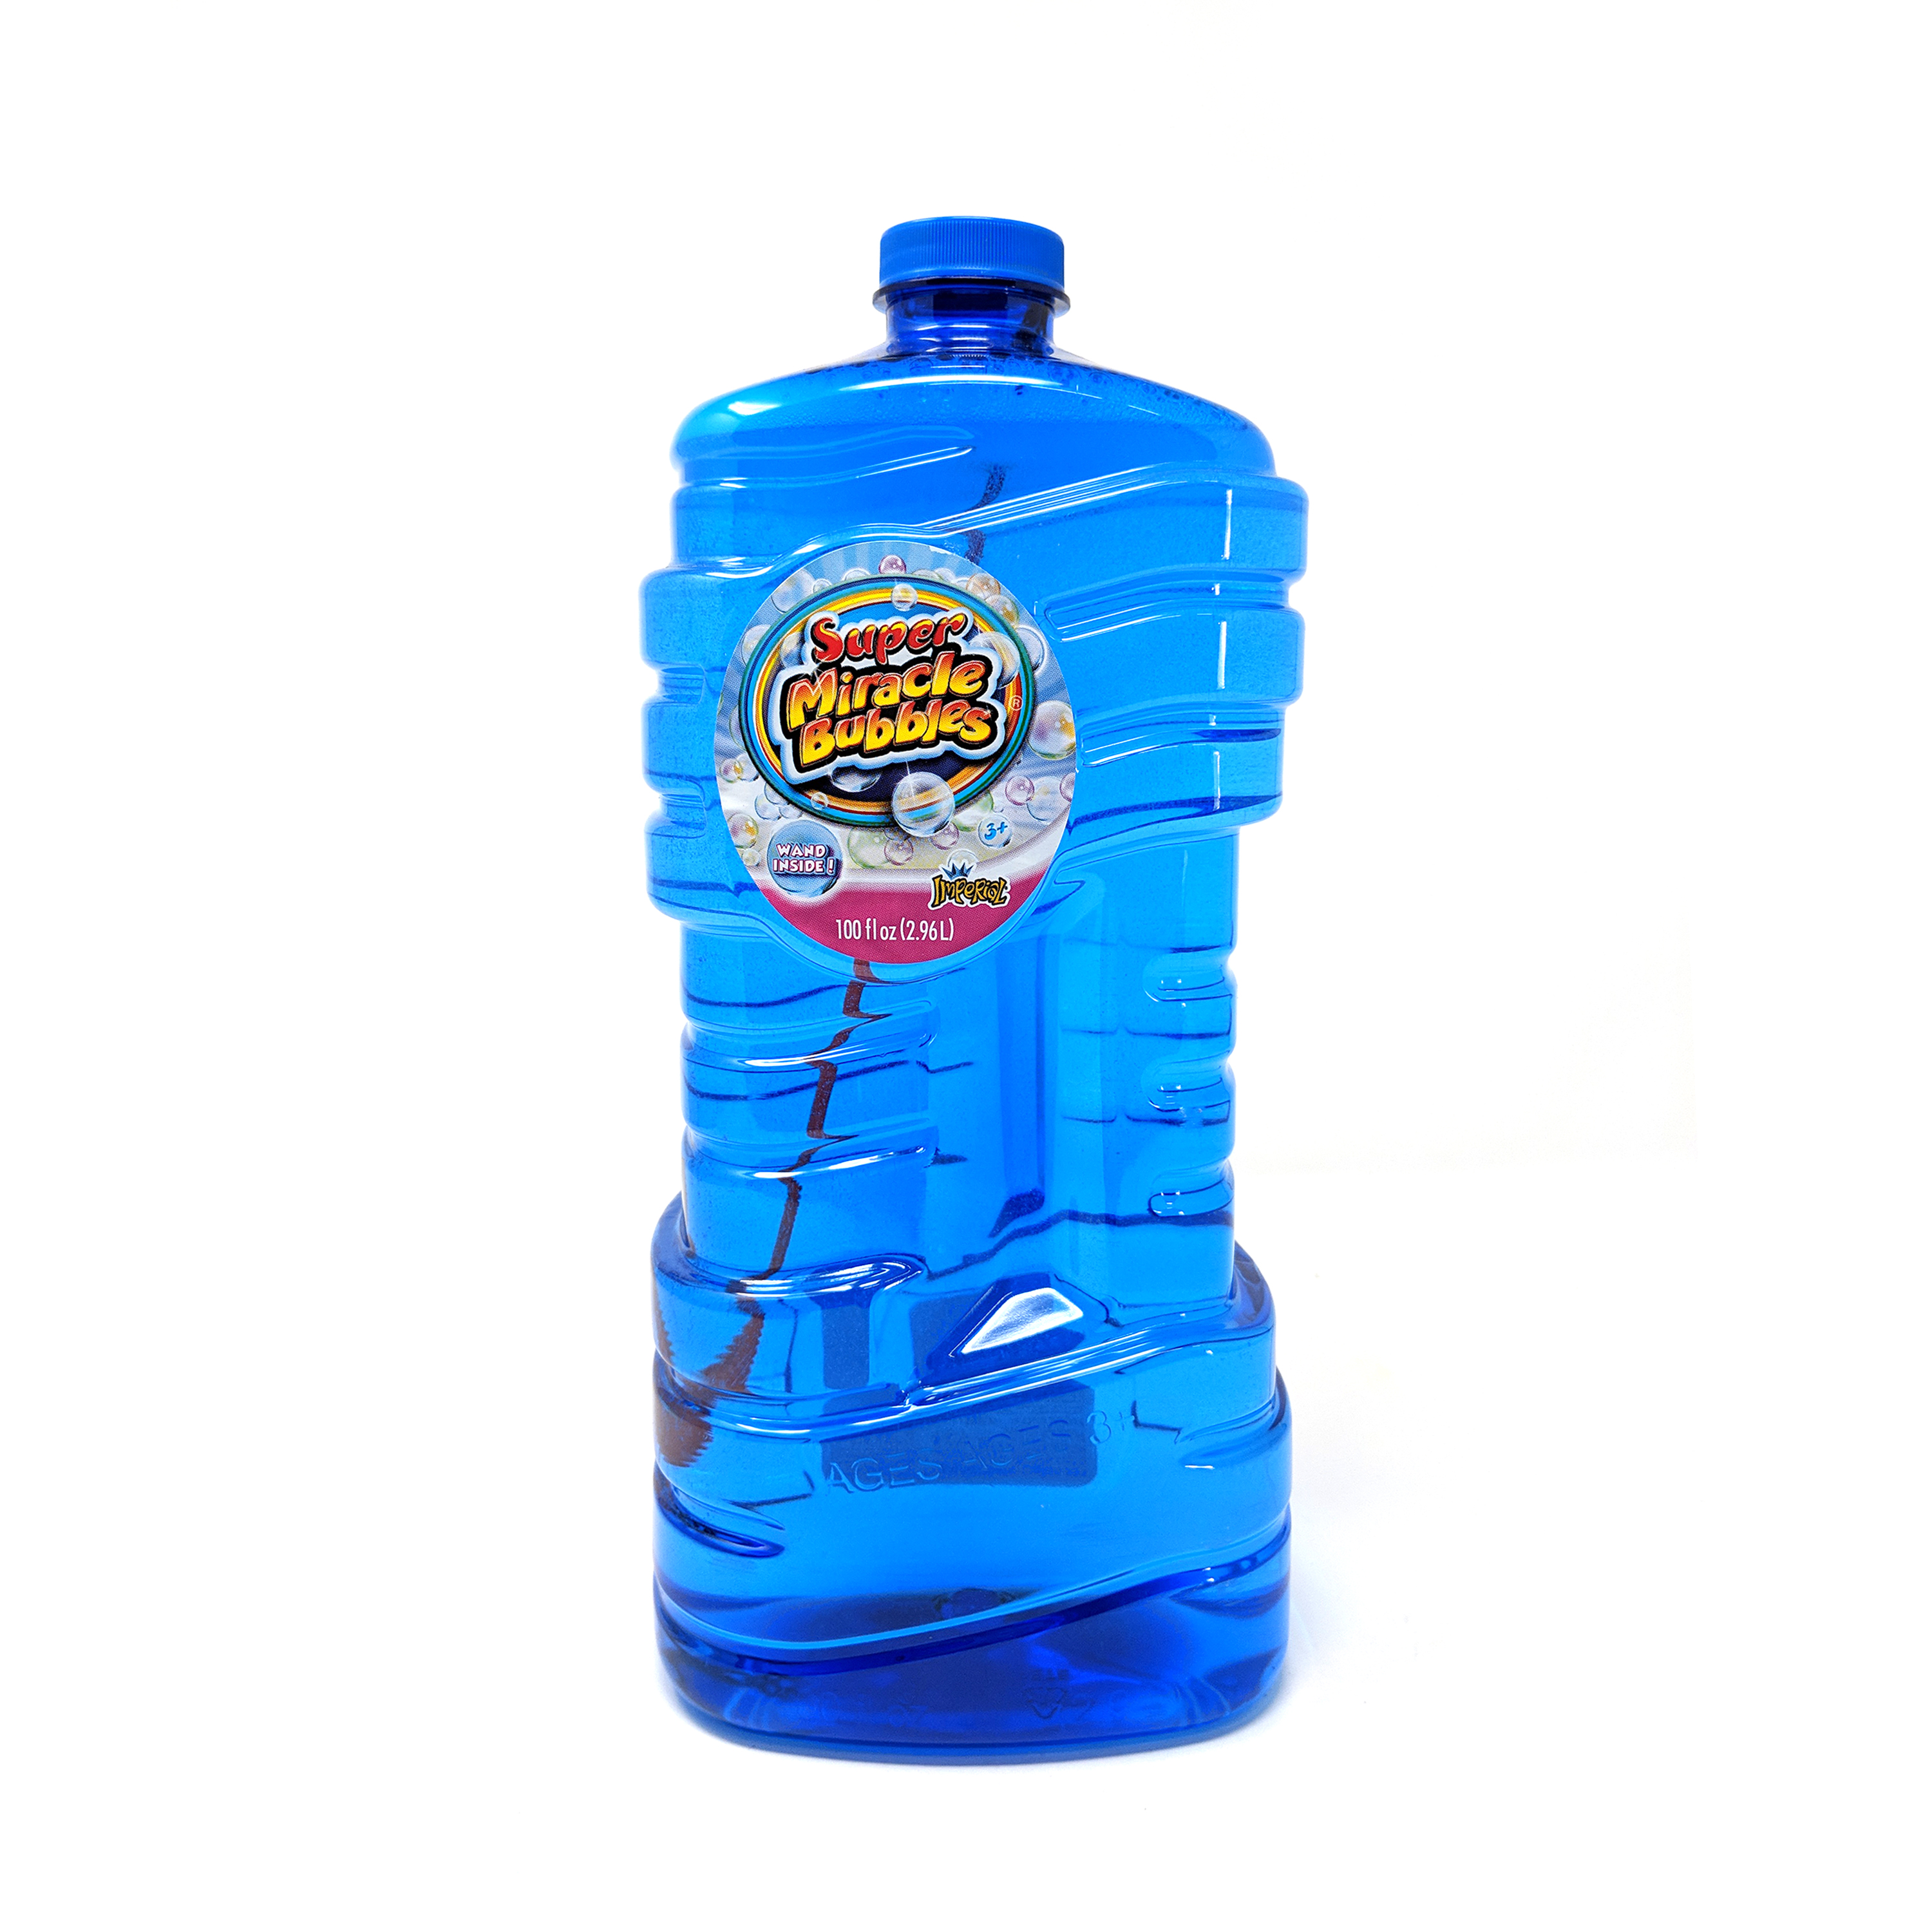 Imperial® Toy Super Miracle® Bubbles With 100 oz Bubble Solution, 1 Bottle Per Order, Color May Vary